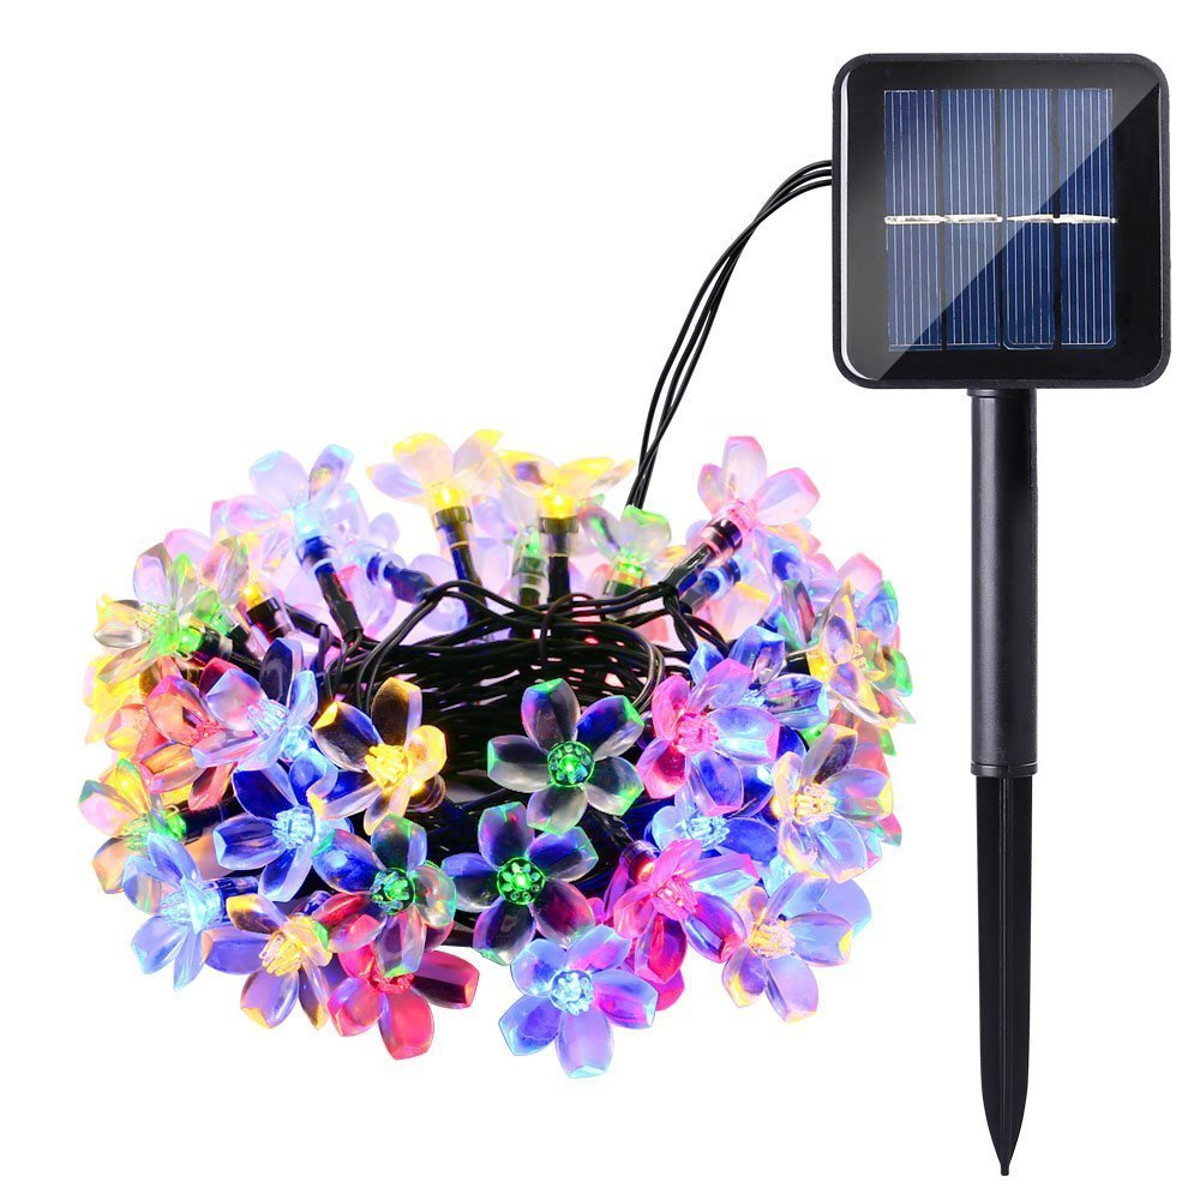 Solar Powered 6M 30LEDs Blossom Flower Outdoor Fairy String Lights for Christmas Wedding Party